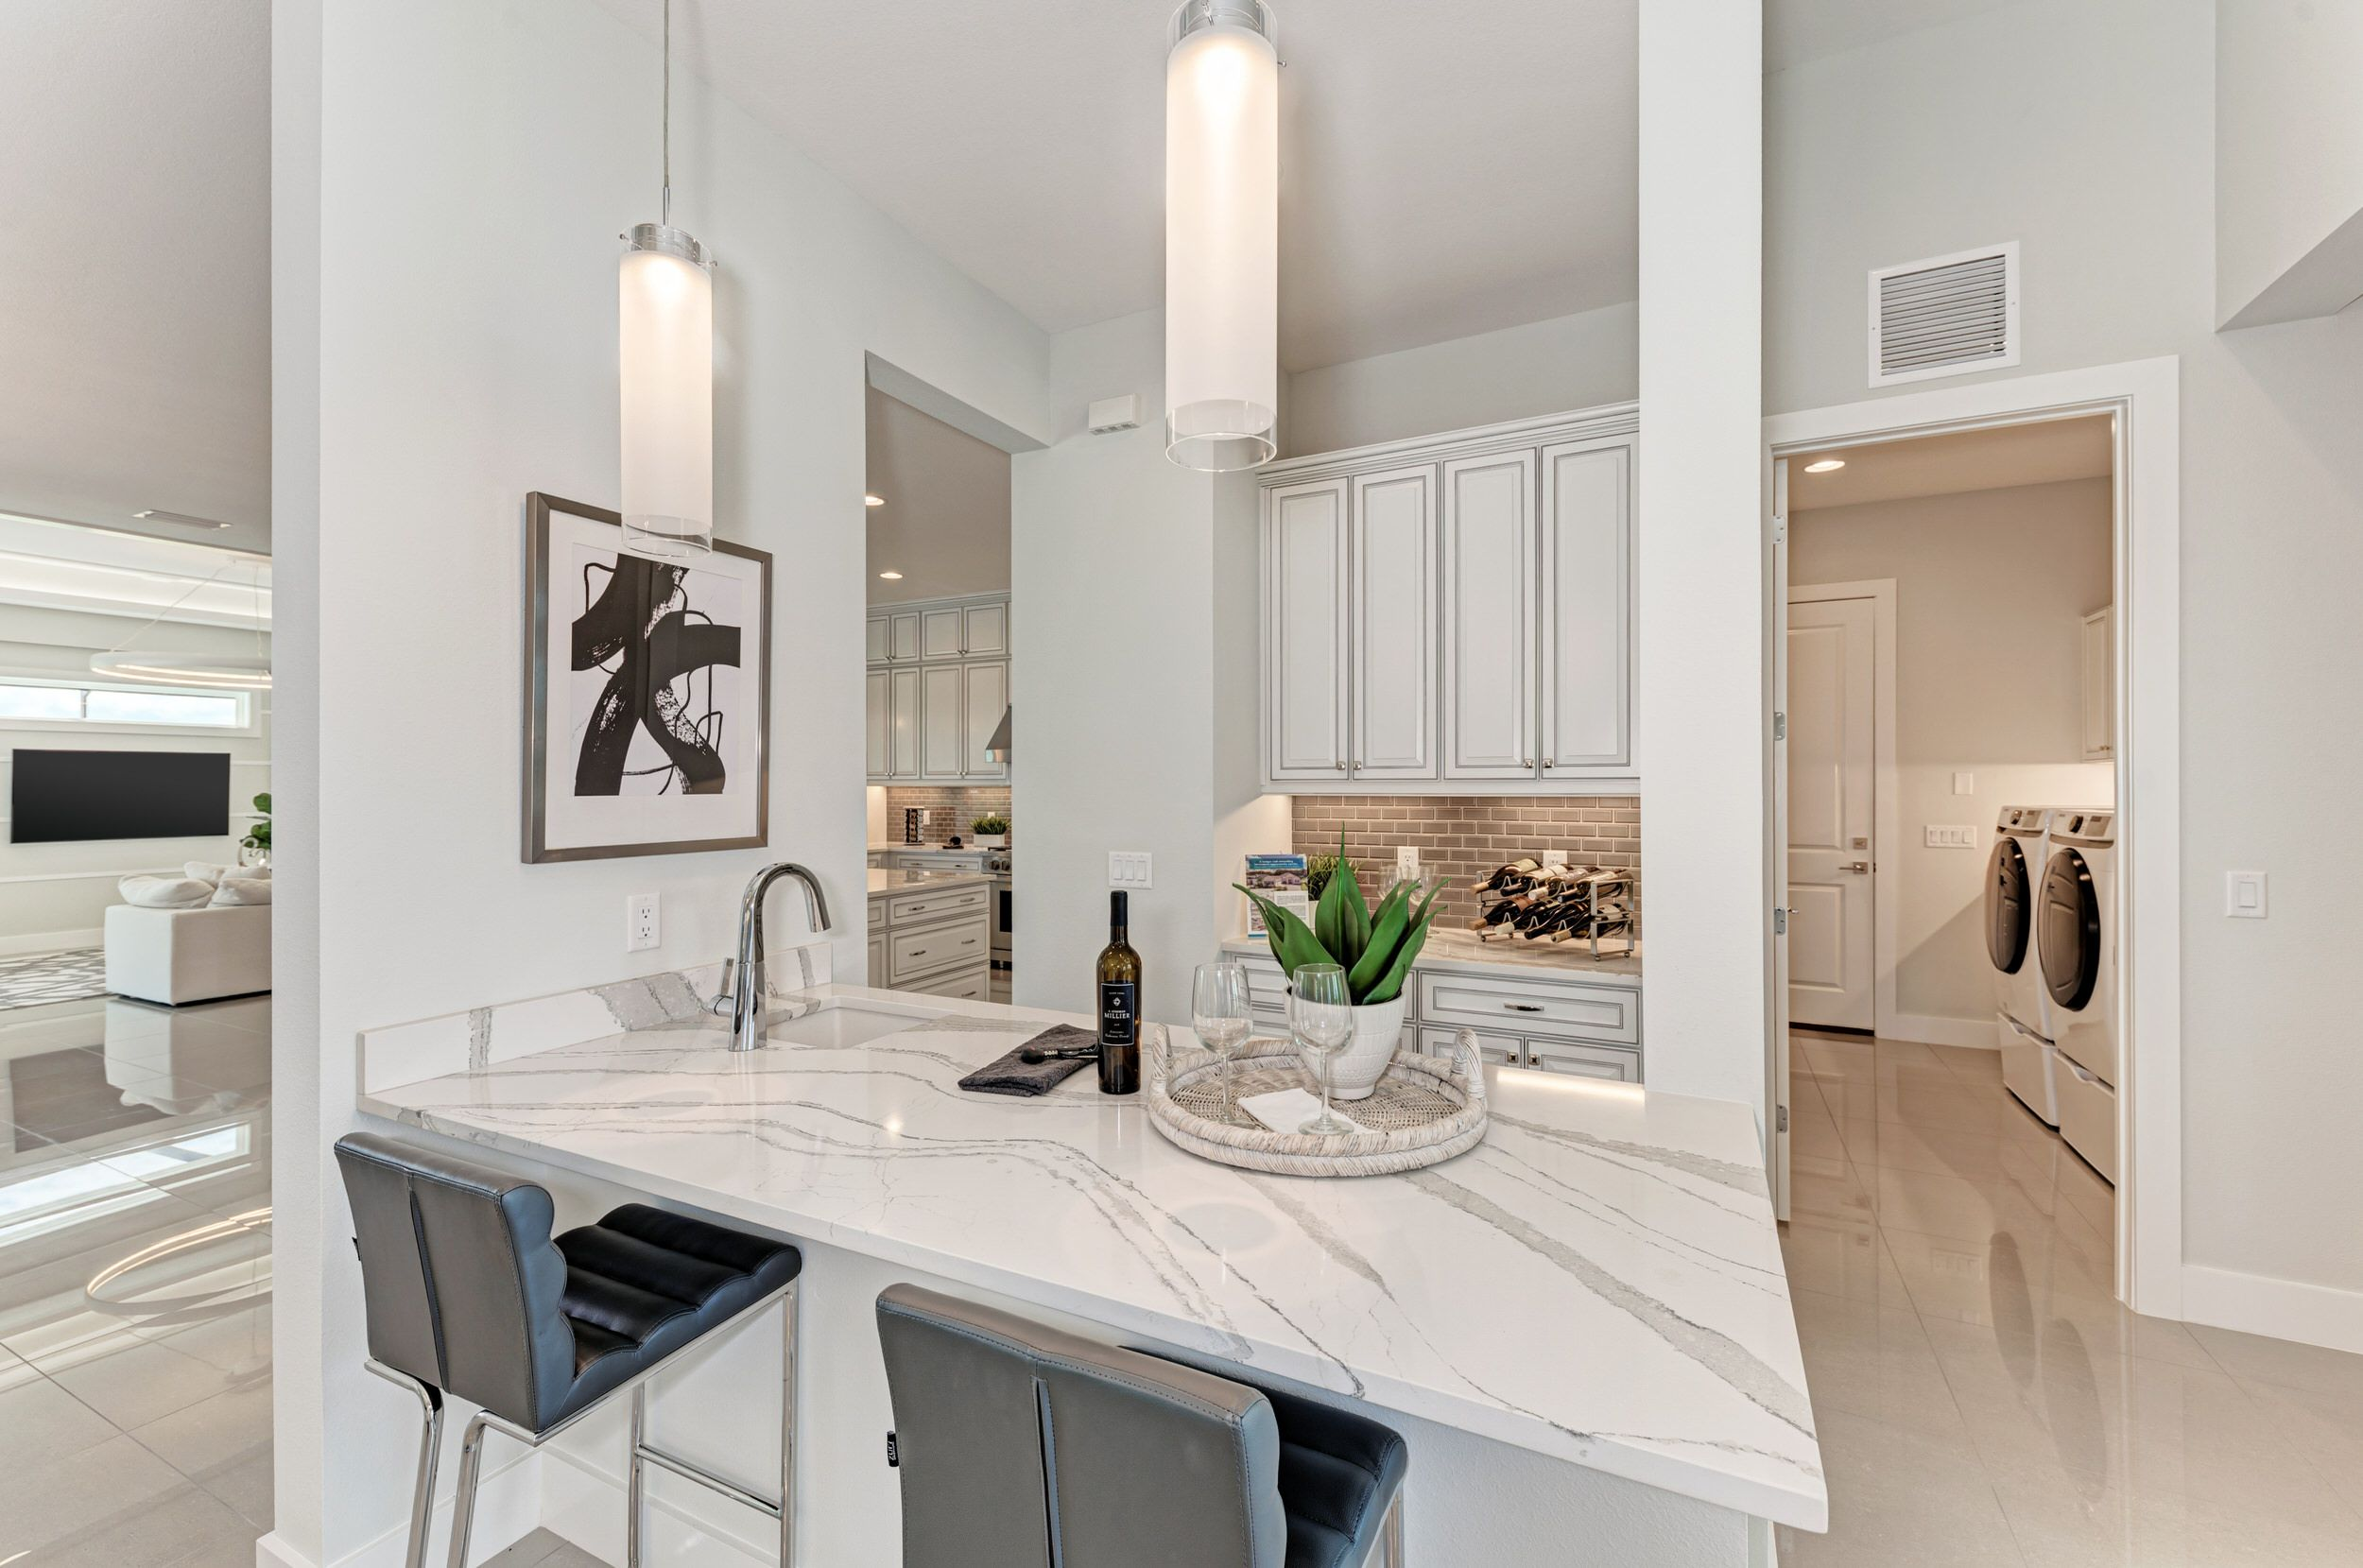 Kitchen featured in the Grand Cayman By Medallion Home in Sarasota-Bradenton, FL